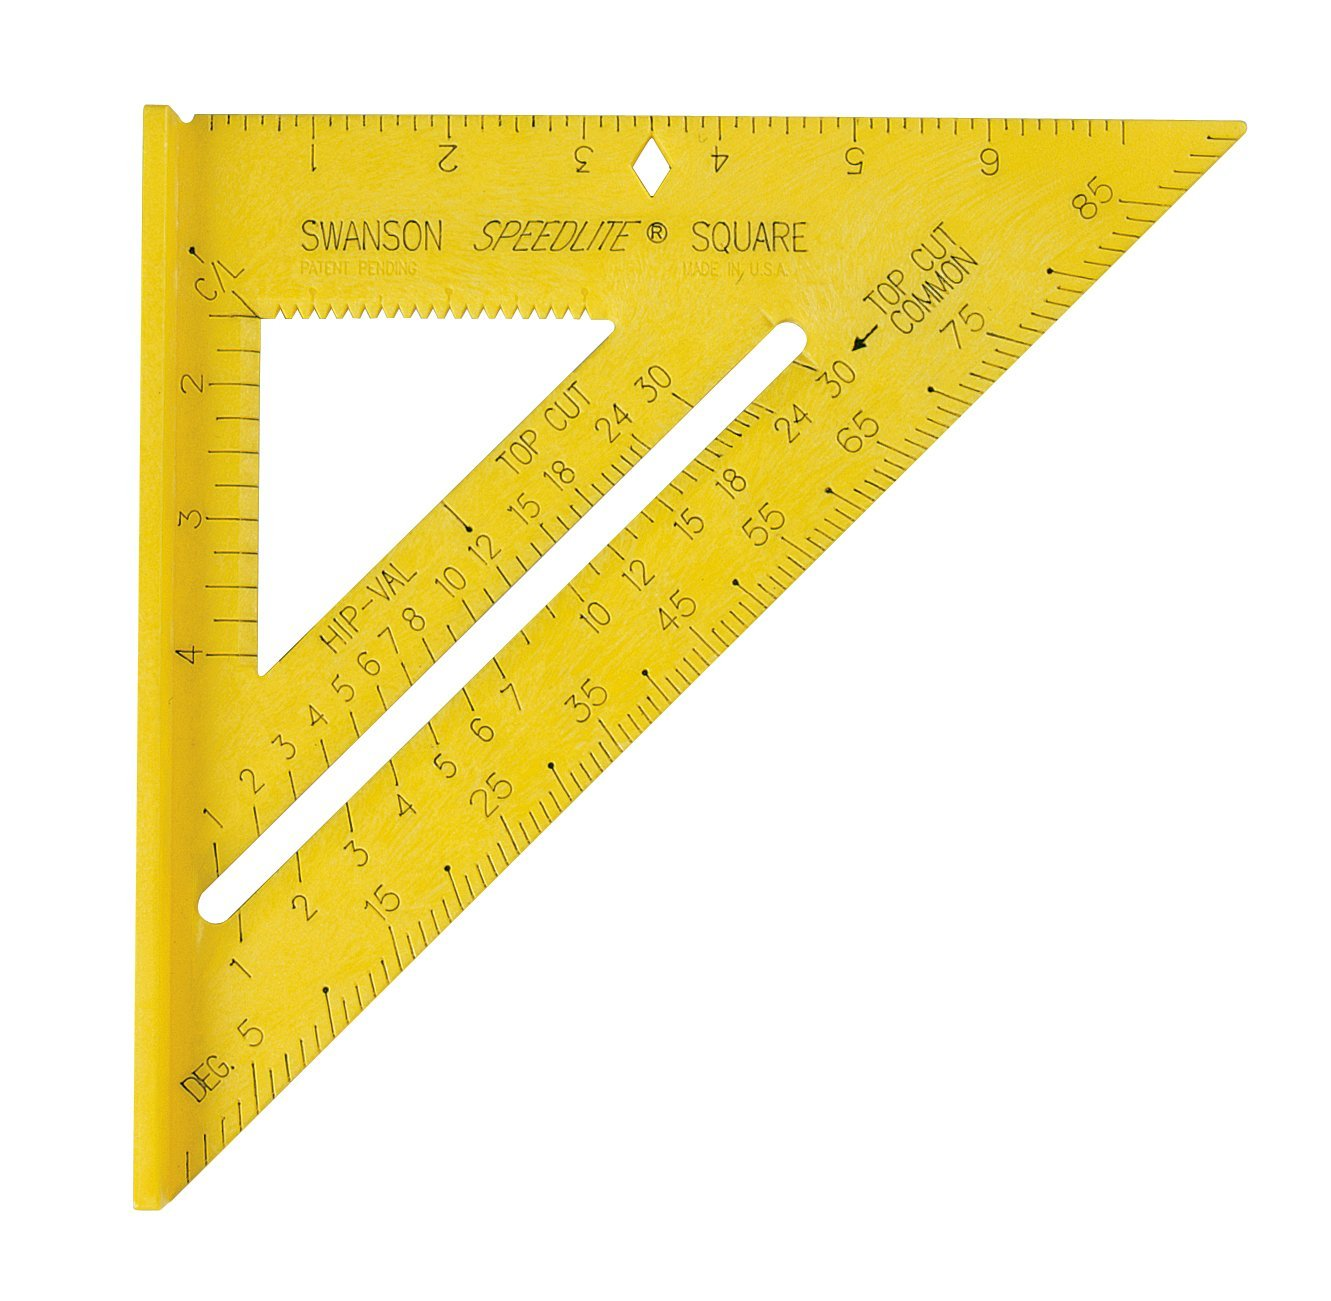 Tool T0119 Speedlite Square Layout Tool, Yellow, 8-Inch size is great for siding By Swanson by